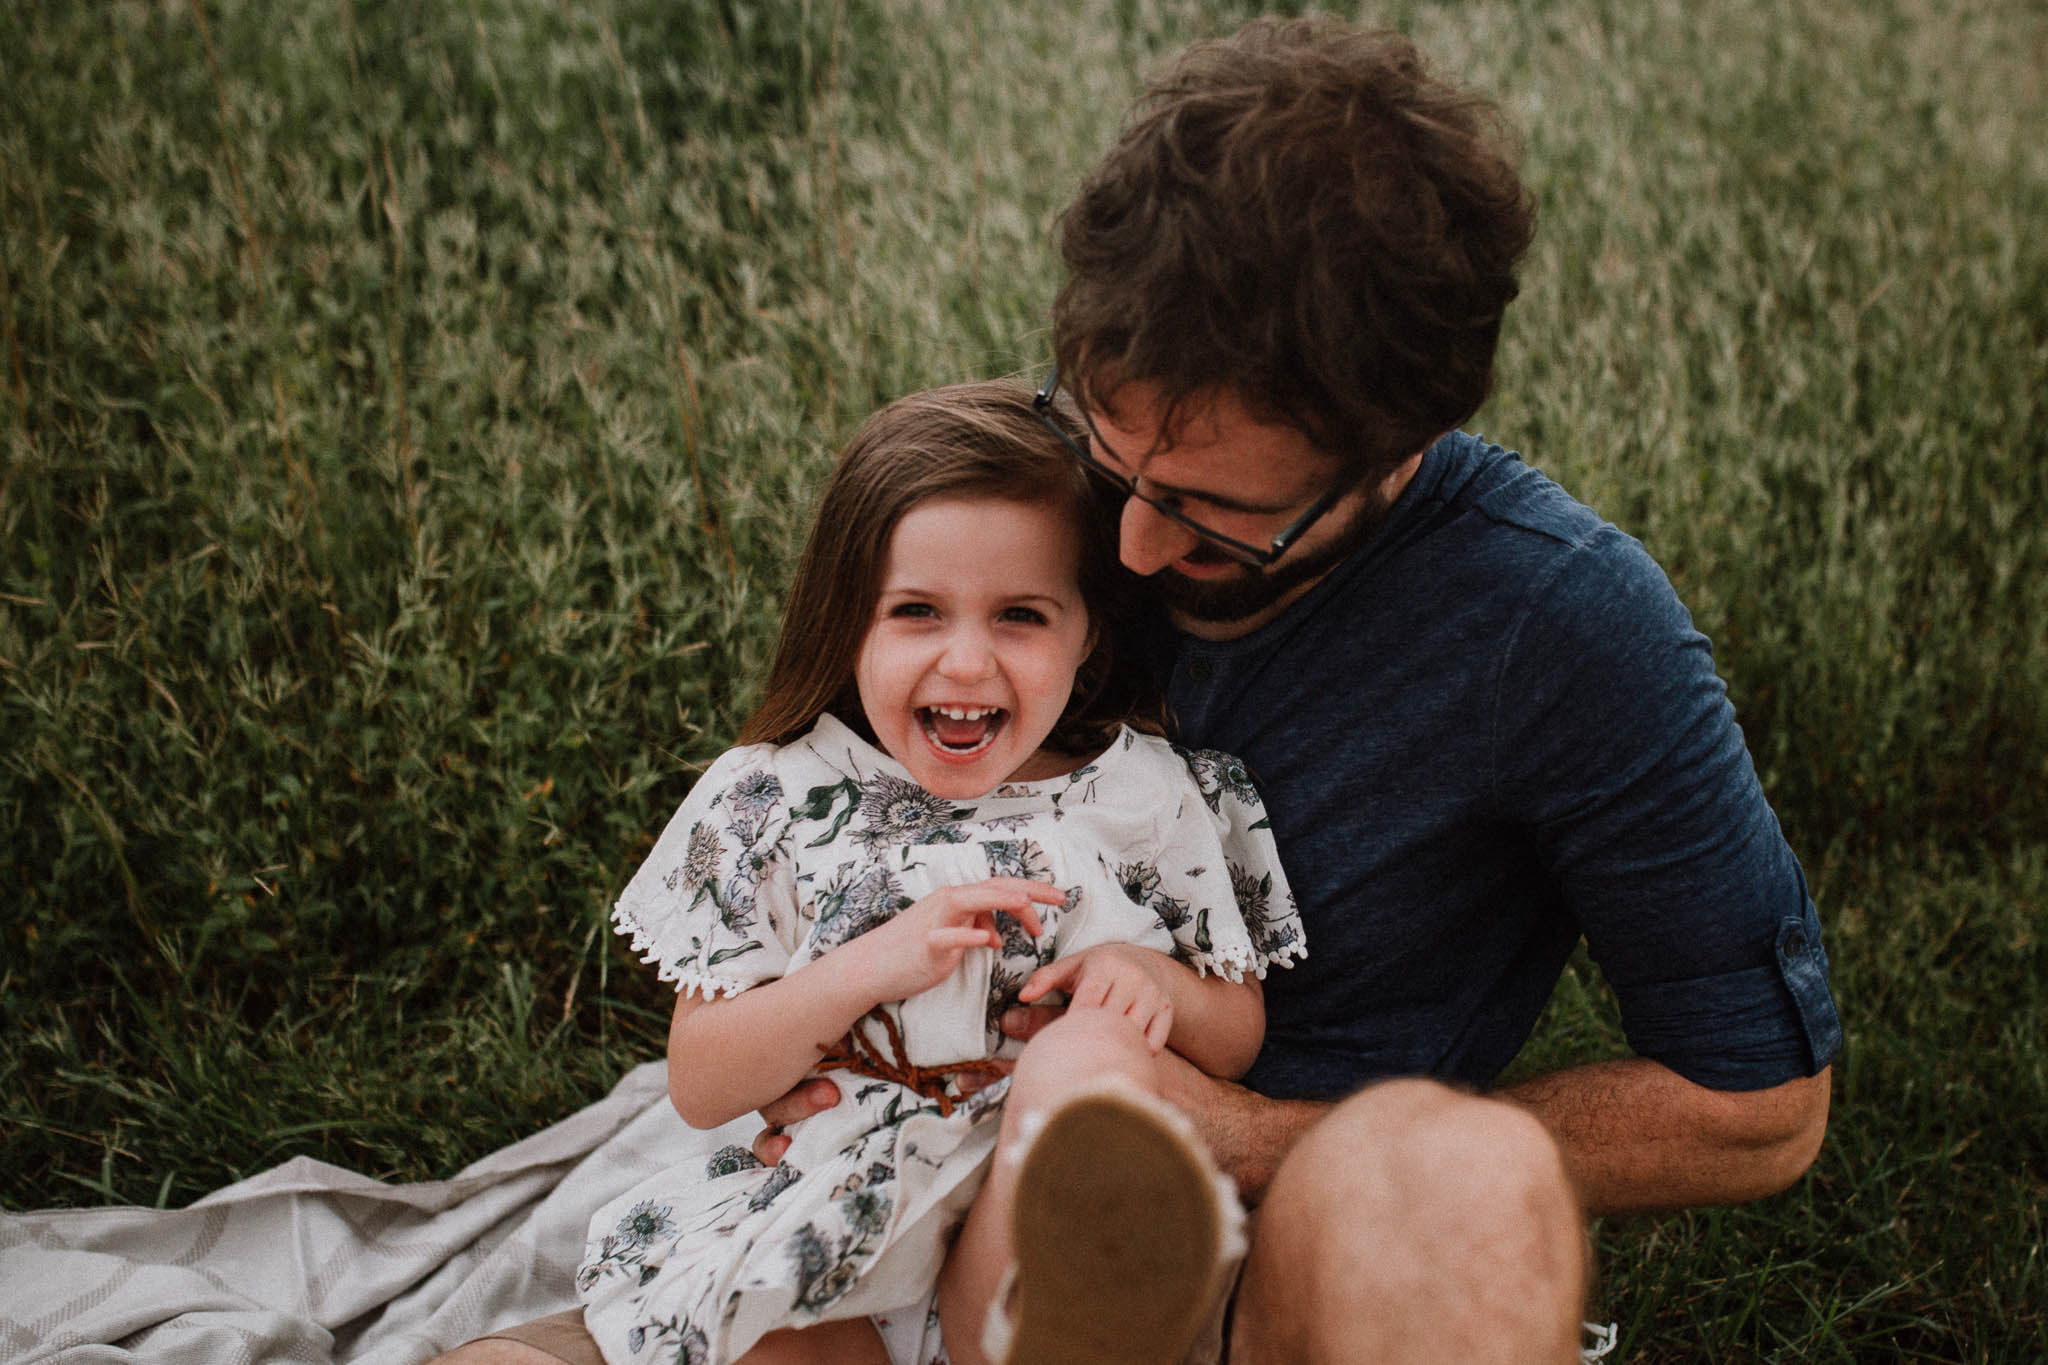 Daddy Daughter tickle hug laugh Toddler Girl Ashburn Virginia Lifestyle Documentary Family Marti Austin Photography